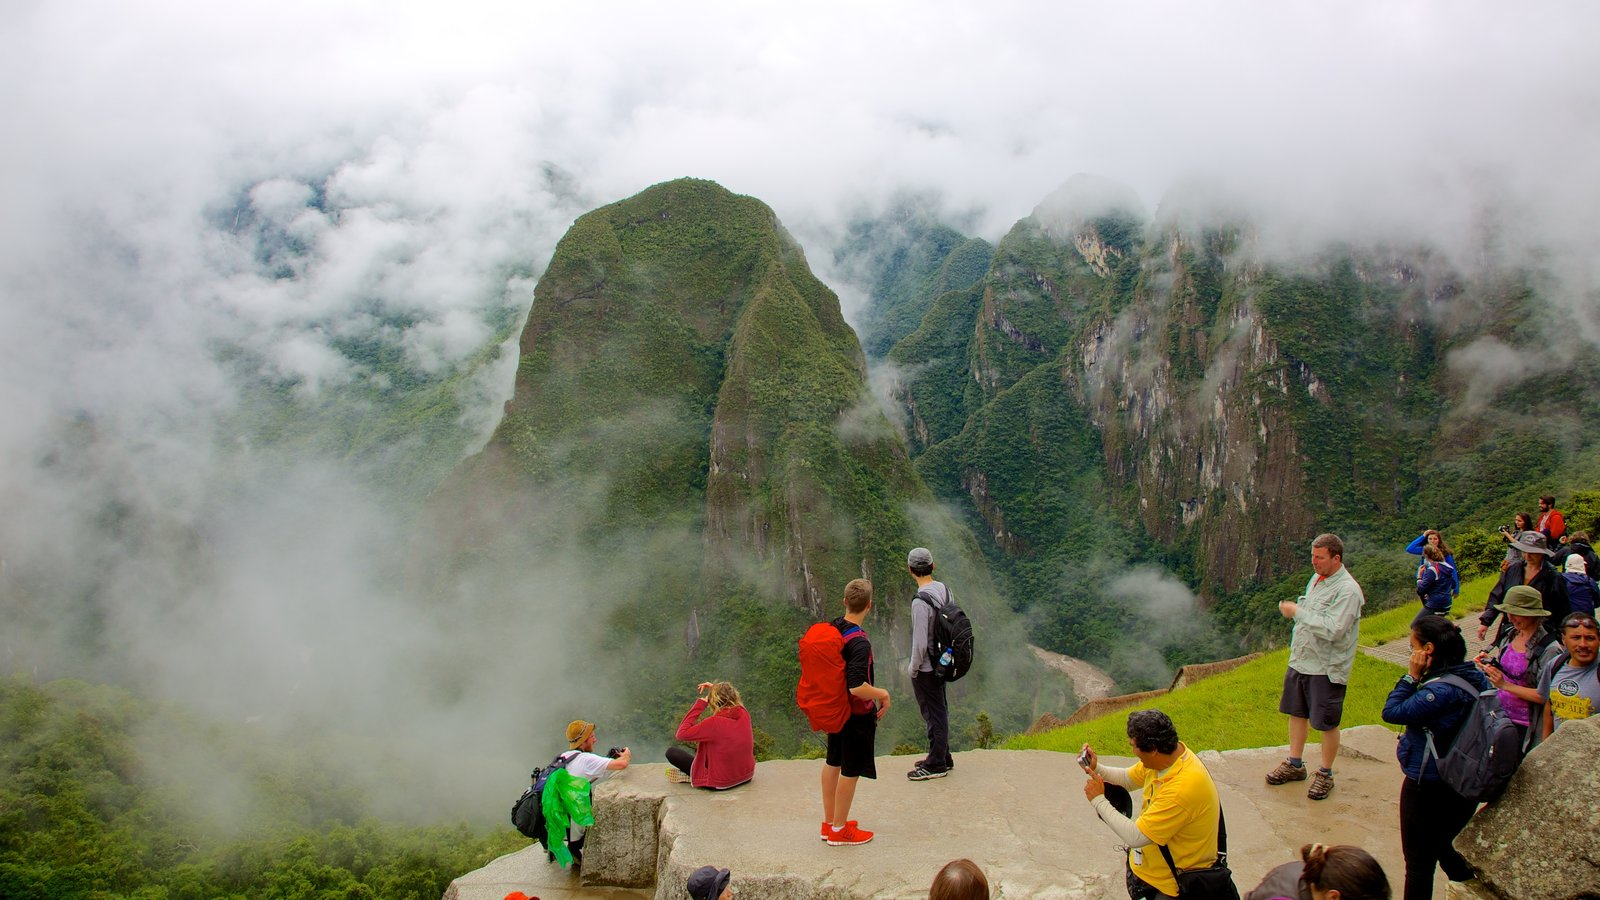 Machu Picchu which includes mountains, mist or fog and hiking or walking